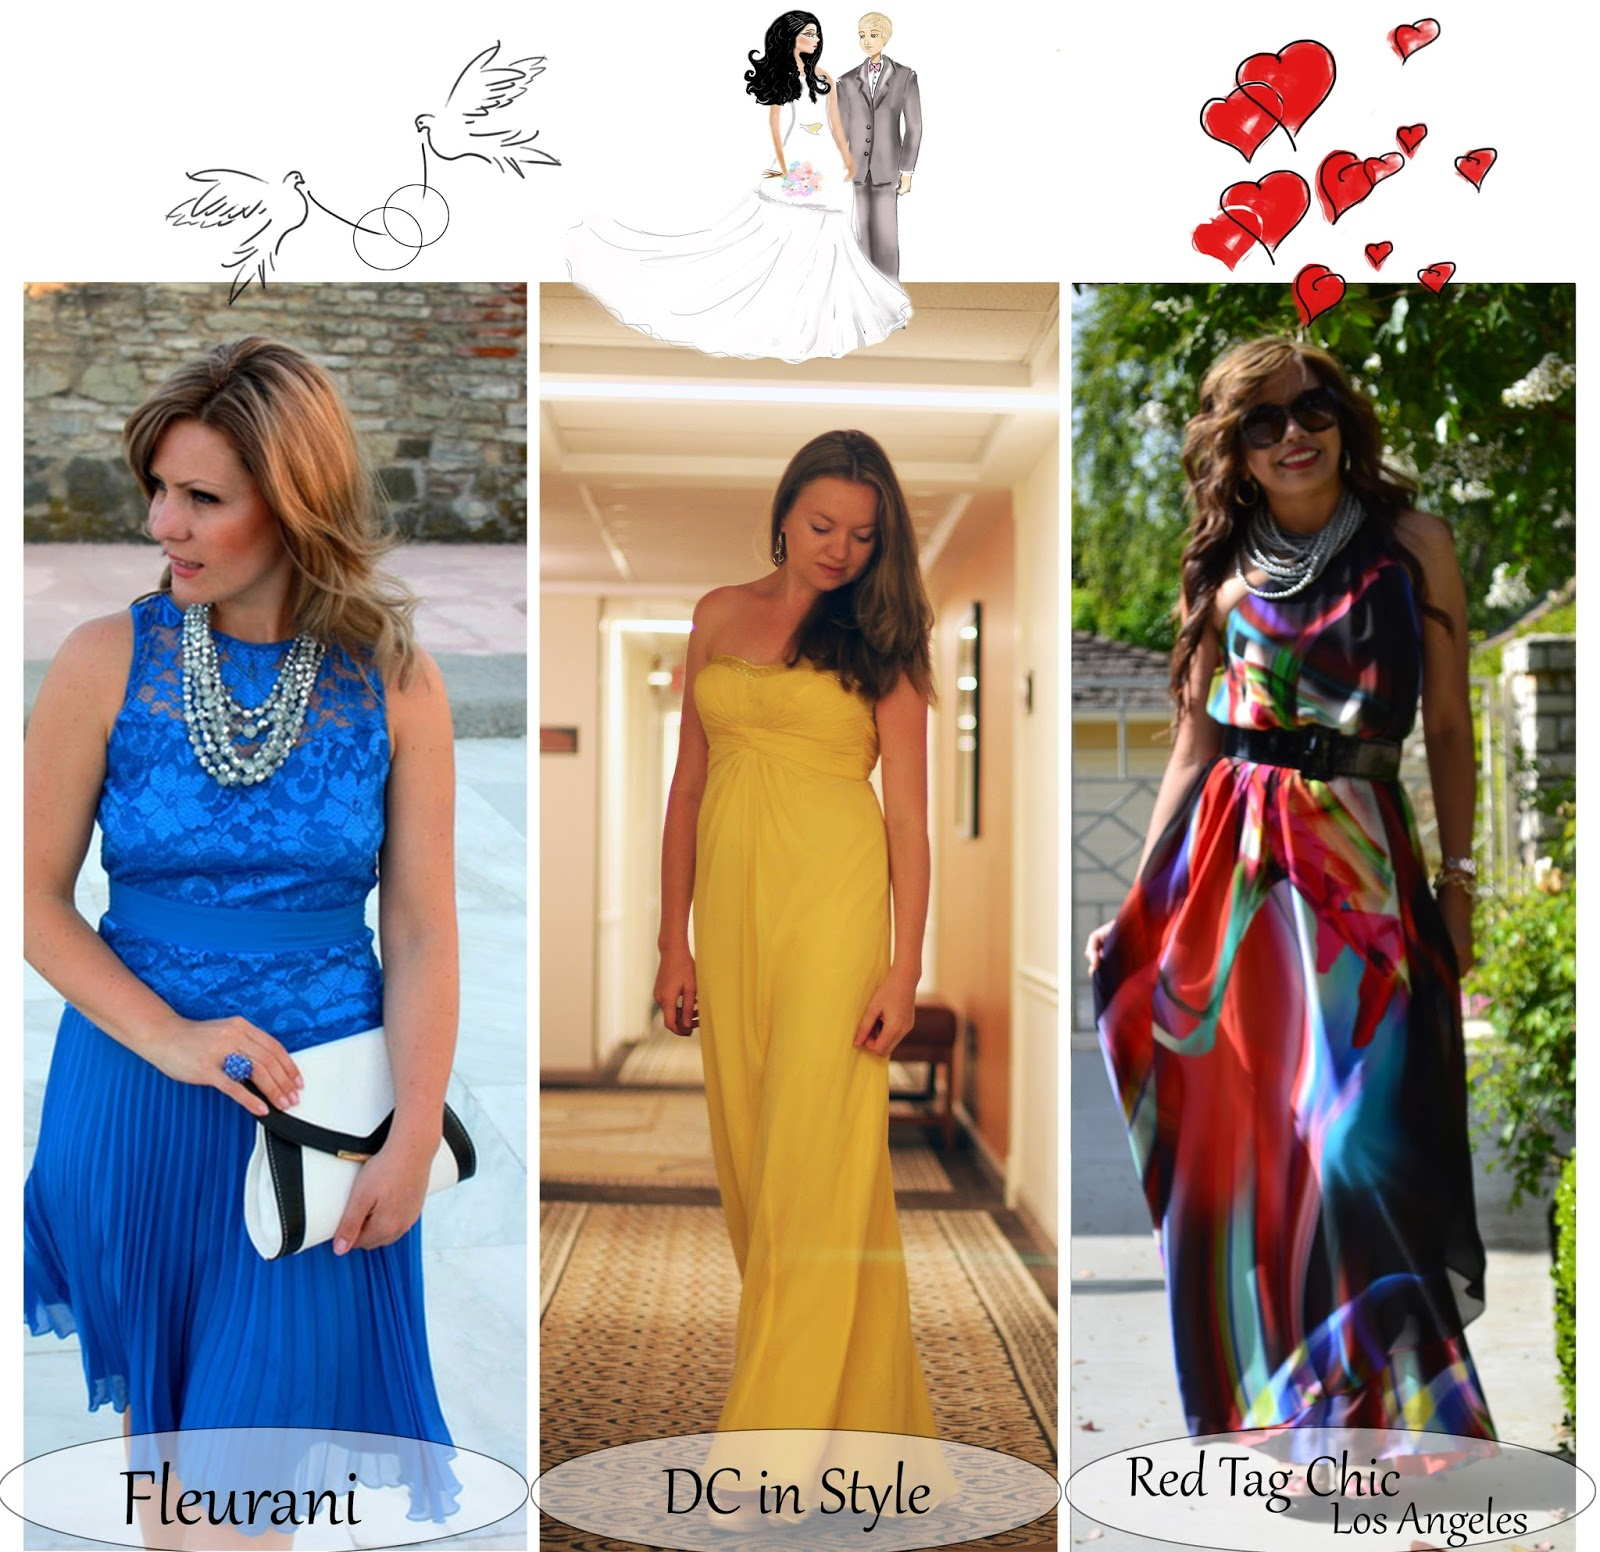 monday bloom link up on fall wedding fall wedding guest dresses Monday Bloom Link up on Fall Wedding guest attire Photo booth